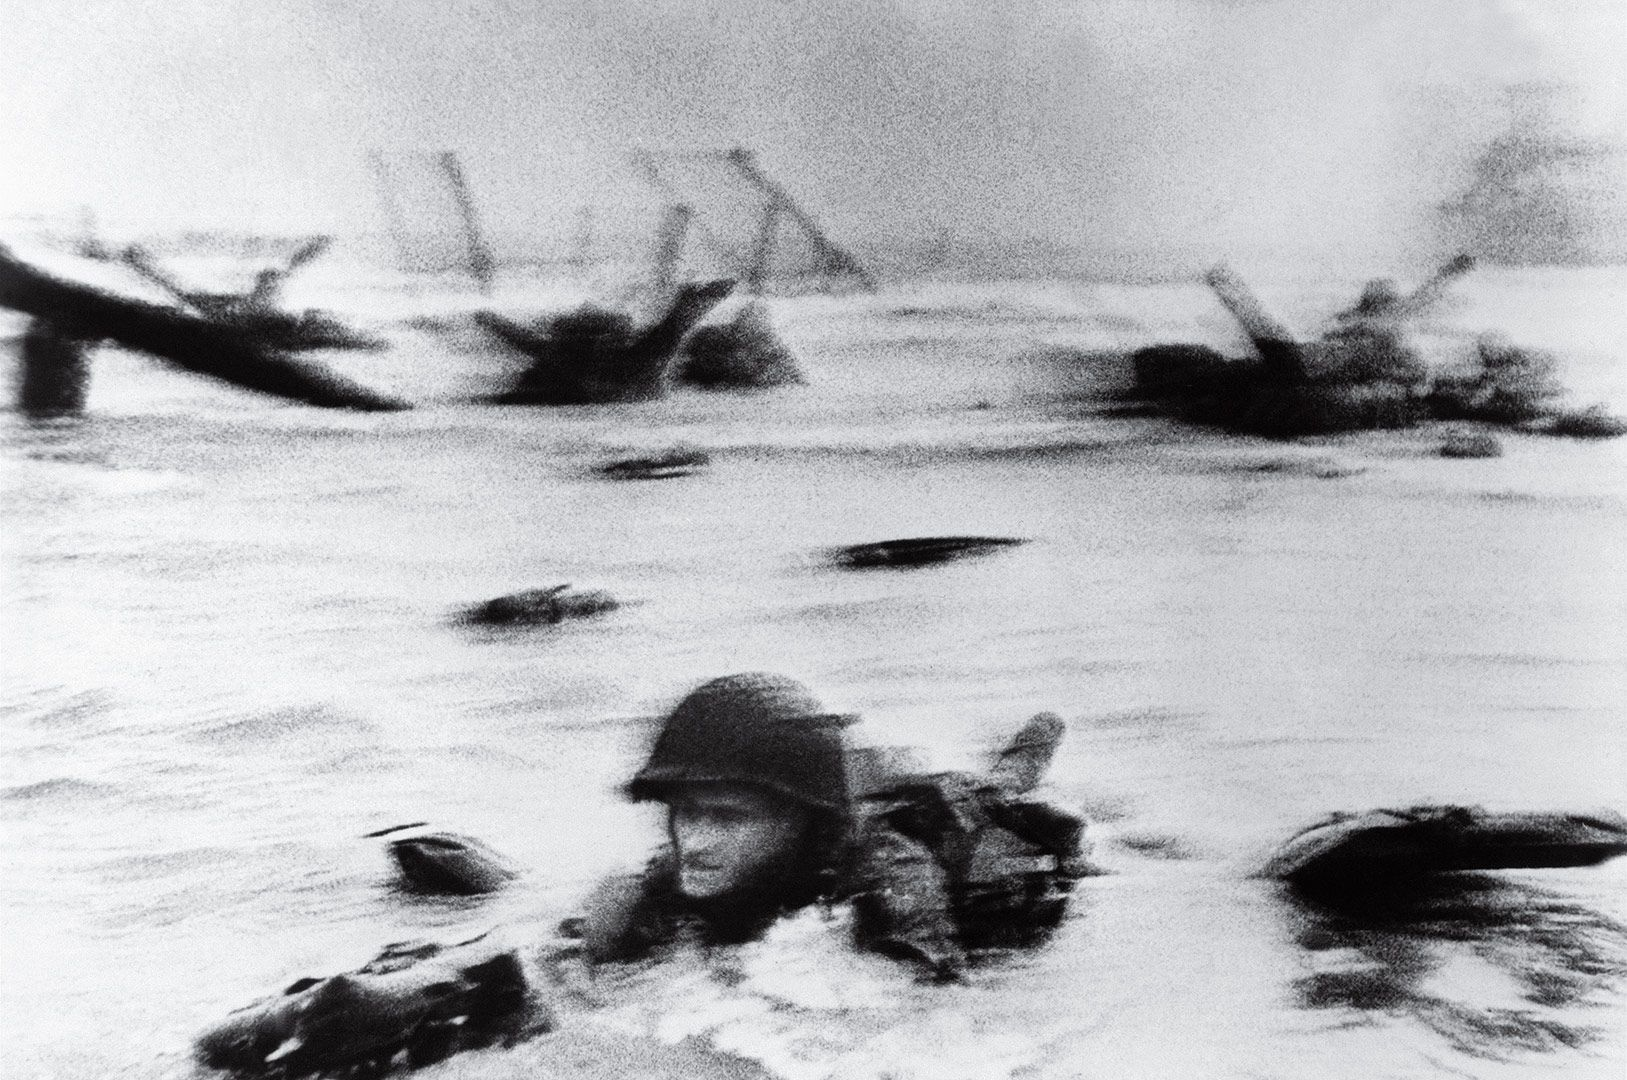 """ROBERT CAPA / D-Day, 1944 / """"It never occurred to me until later that in order to take that picture, Capa had to get ahead of that soldier and turn his back on the action."""""""